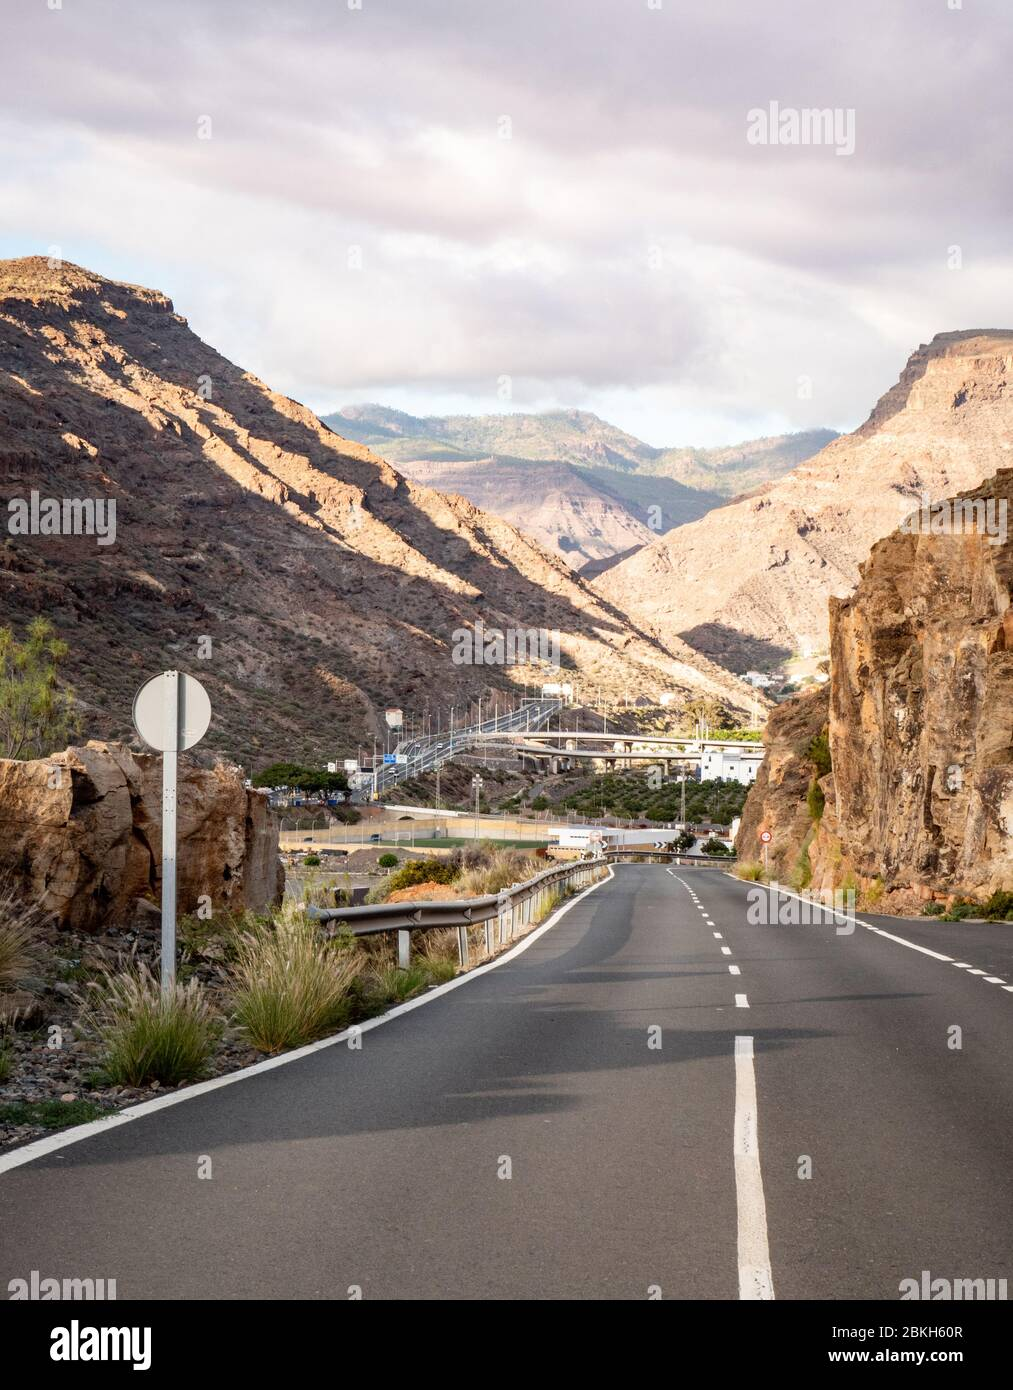 Mountain Pass. An empty road leading into the rocky mountains of Gran Canaria, one of the larger of the Canary Islands. Stock Photo